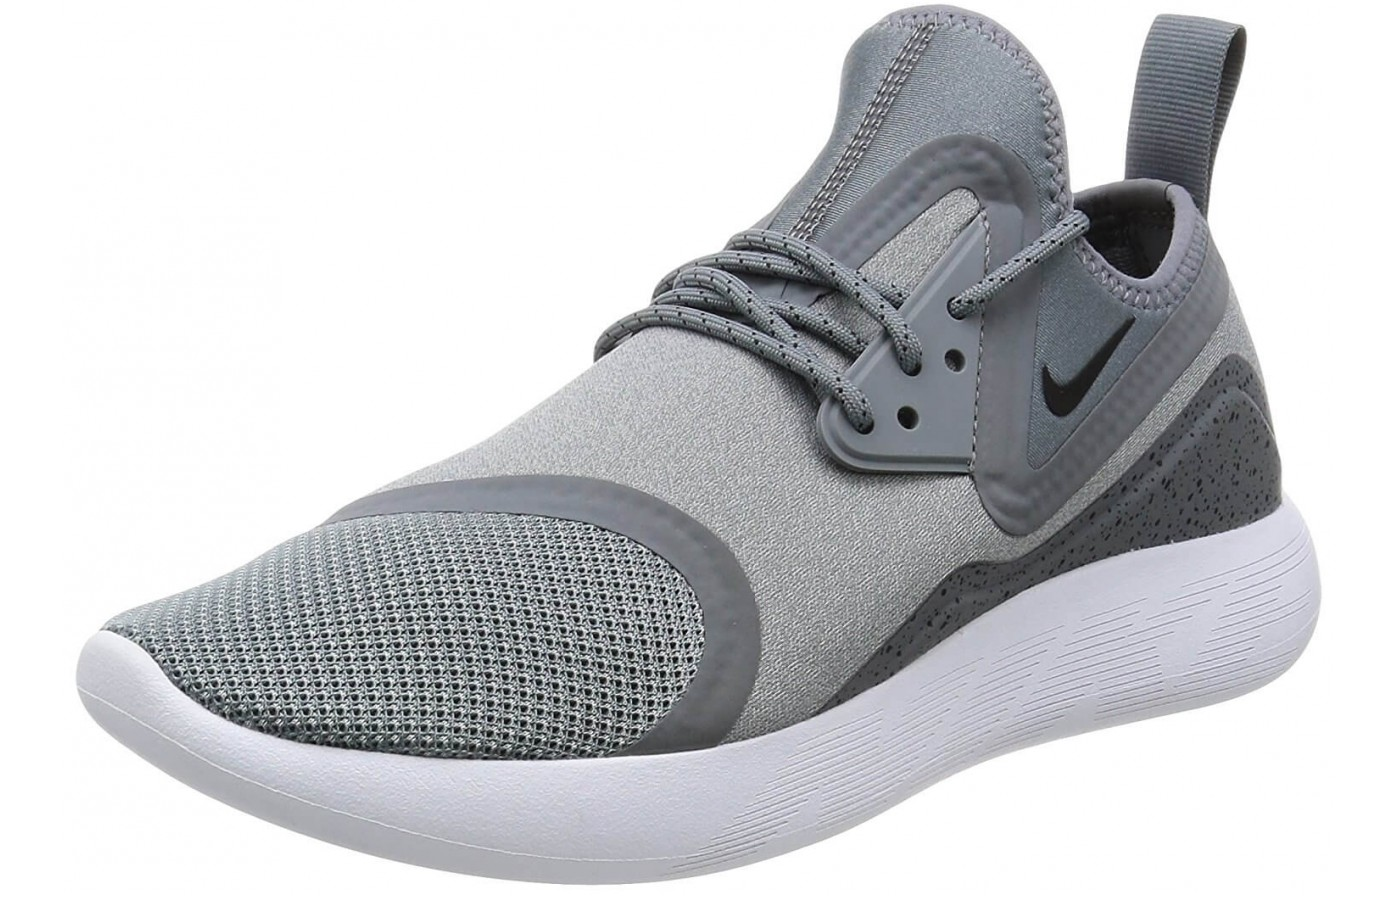 The ankle loop on the Nike LunarCharge Essential provides an easier time putting on these shoes.